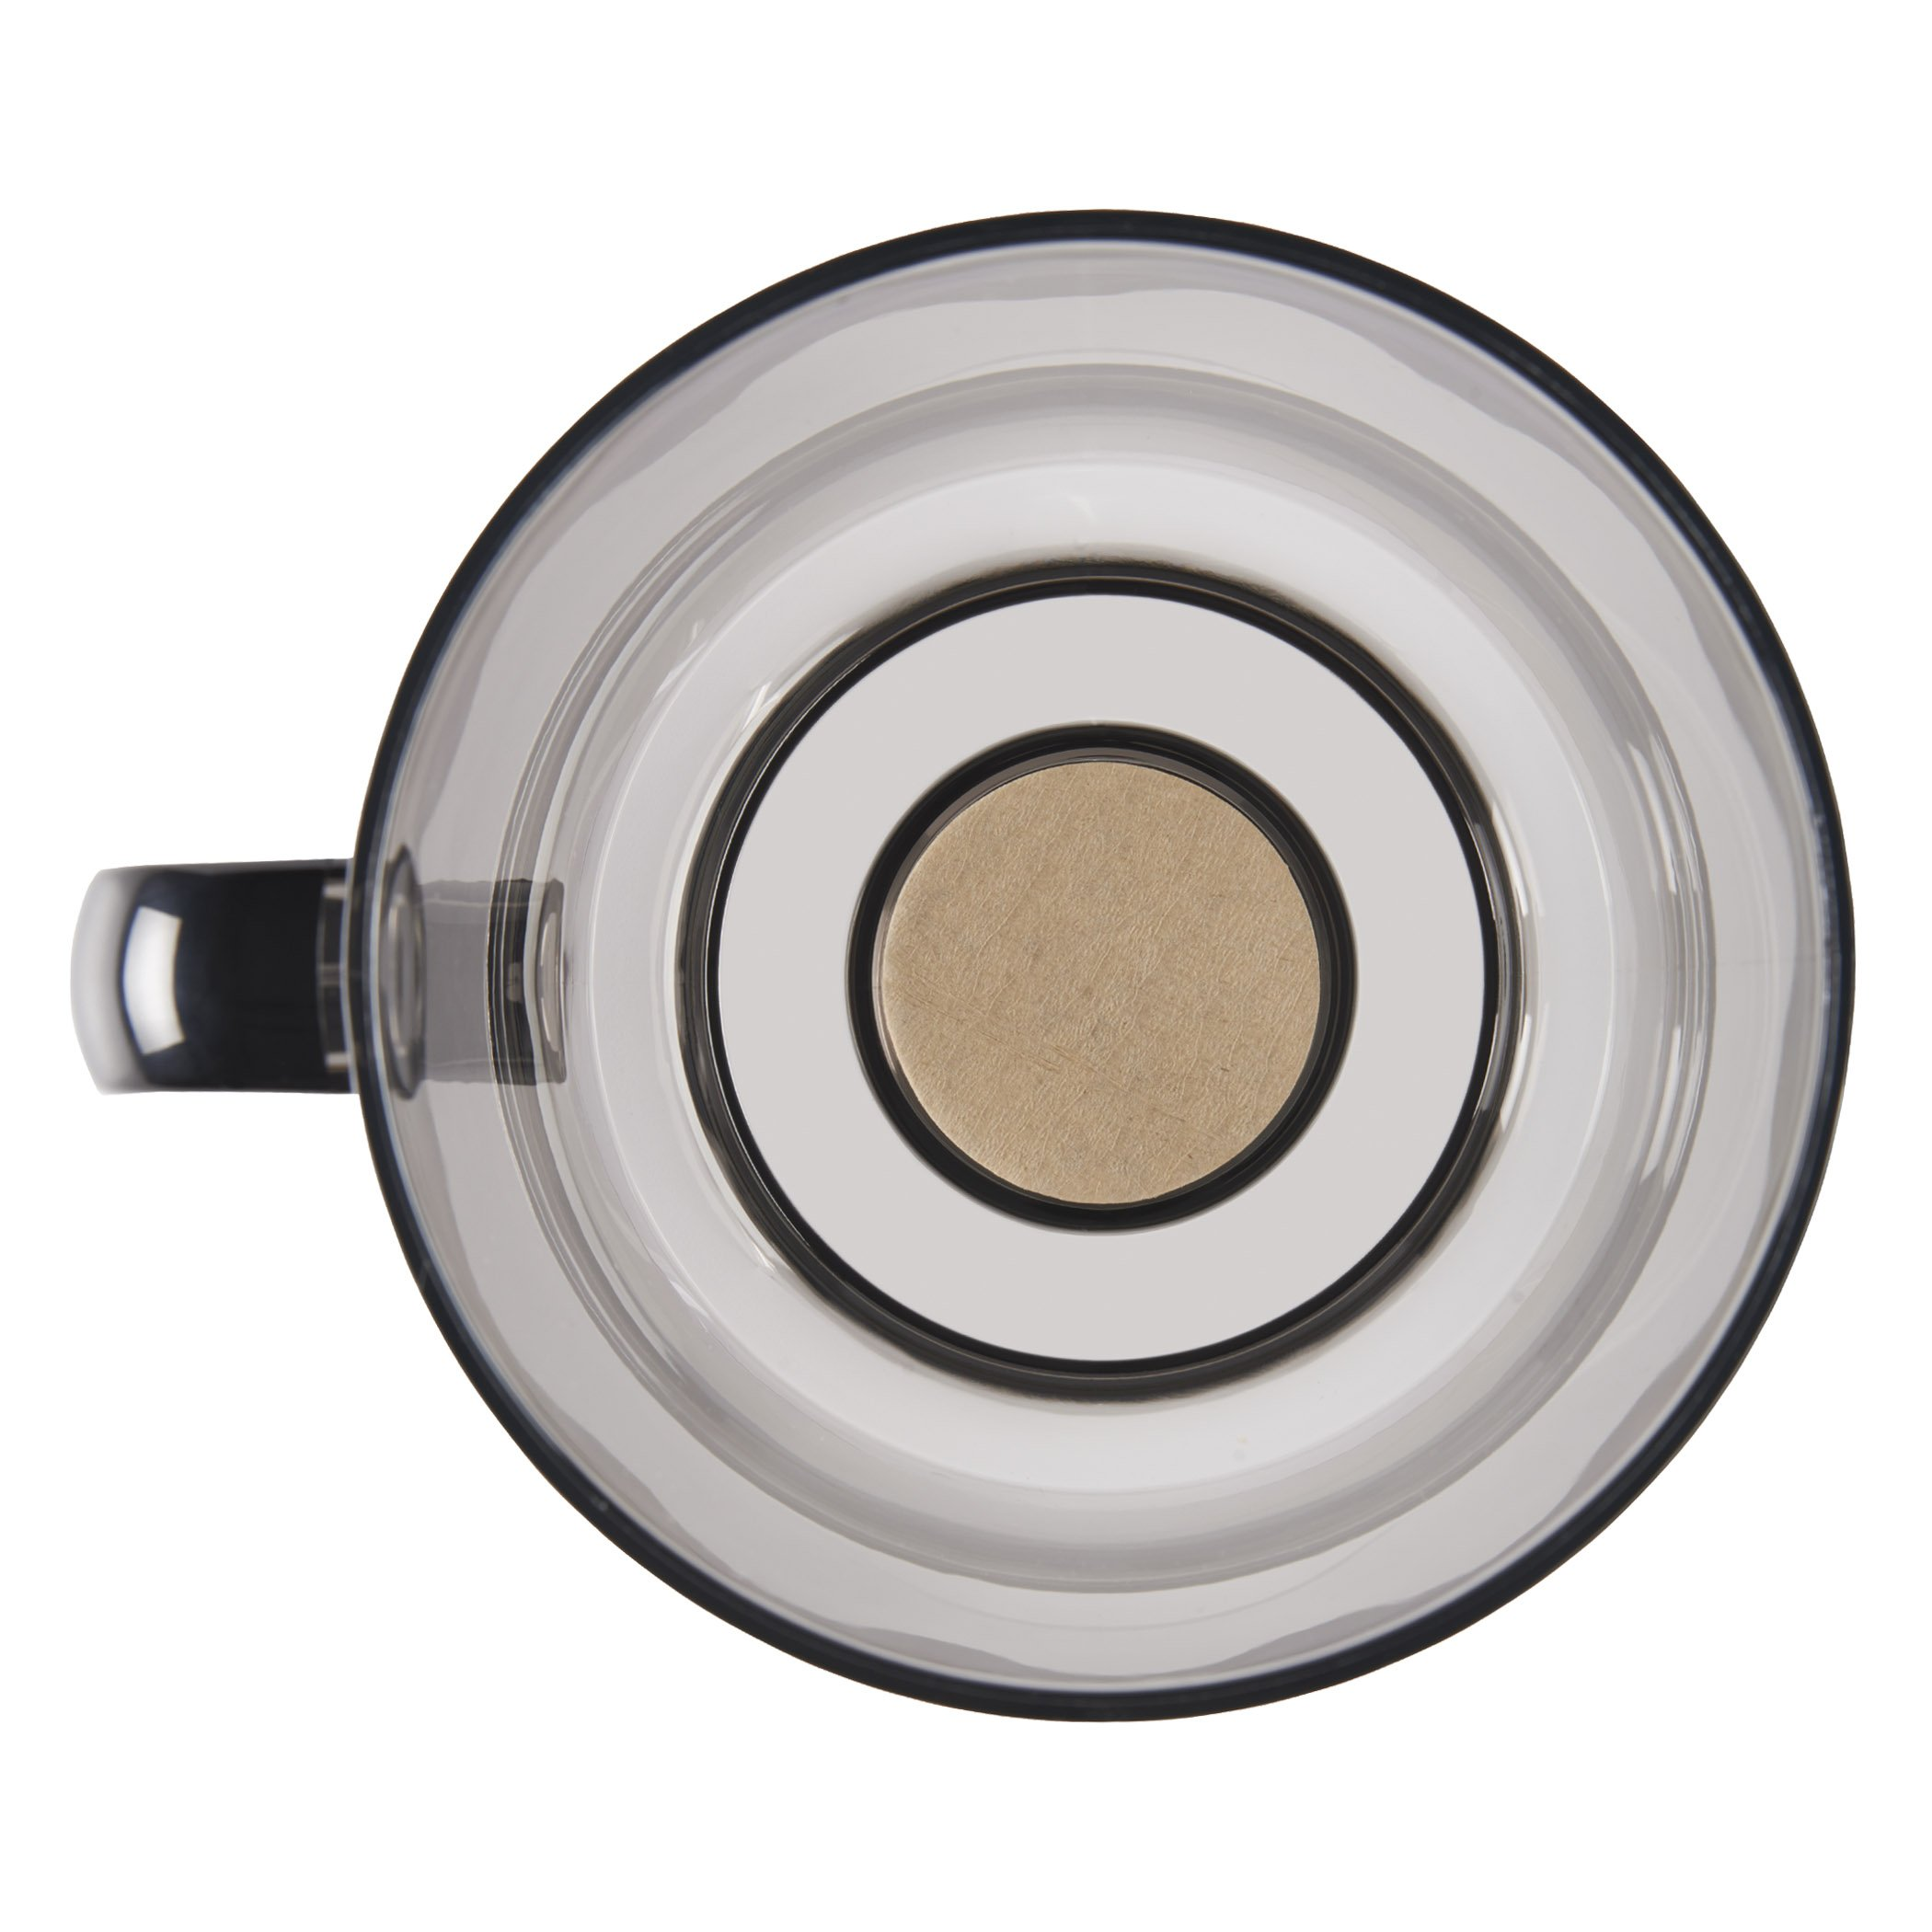 OXO Good Grips Cold Brew Coffee Maker Replacement Paper Filters, Brown, 50 Per Box by OXO (Image #4)